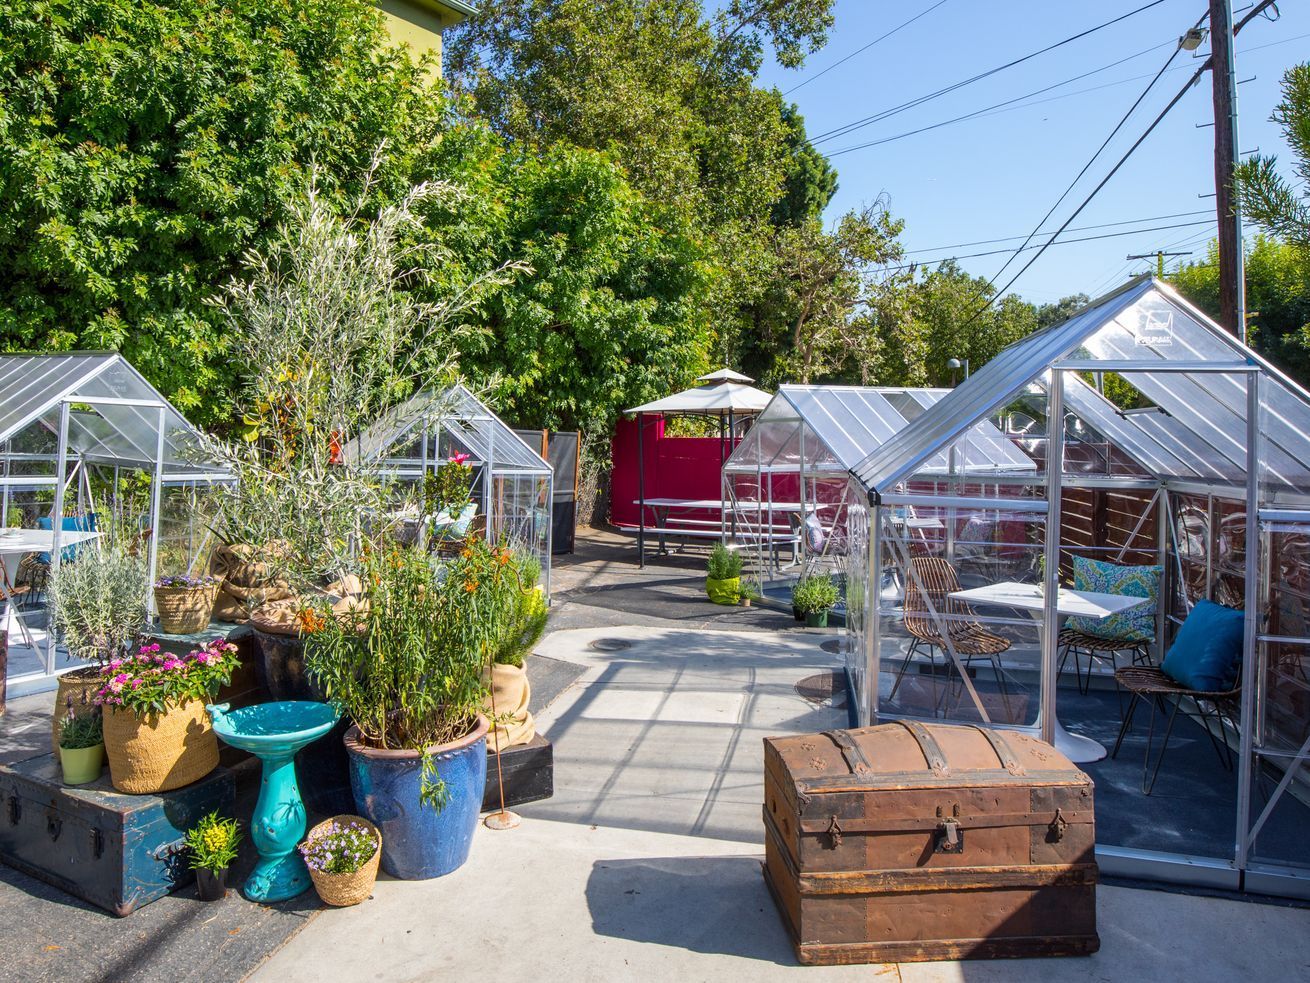 This Echo Park Cafe Is Using Greenhouses For Socially Distant Outdoor Dining In 2020 Outdoor Dining Los Angeles Restaurants Outdoor Dining Area